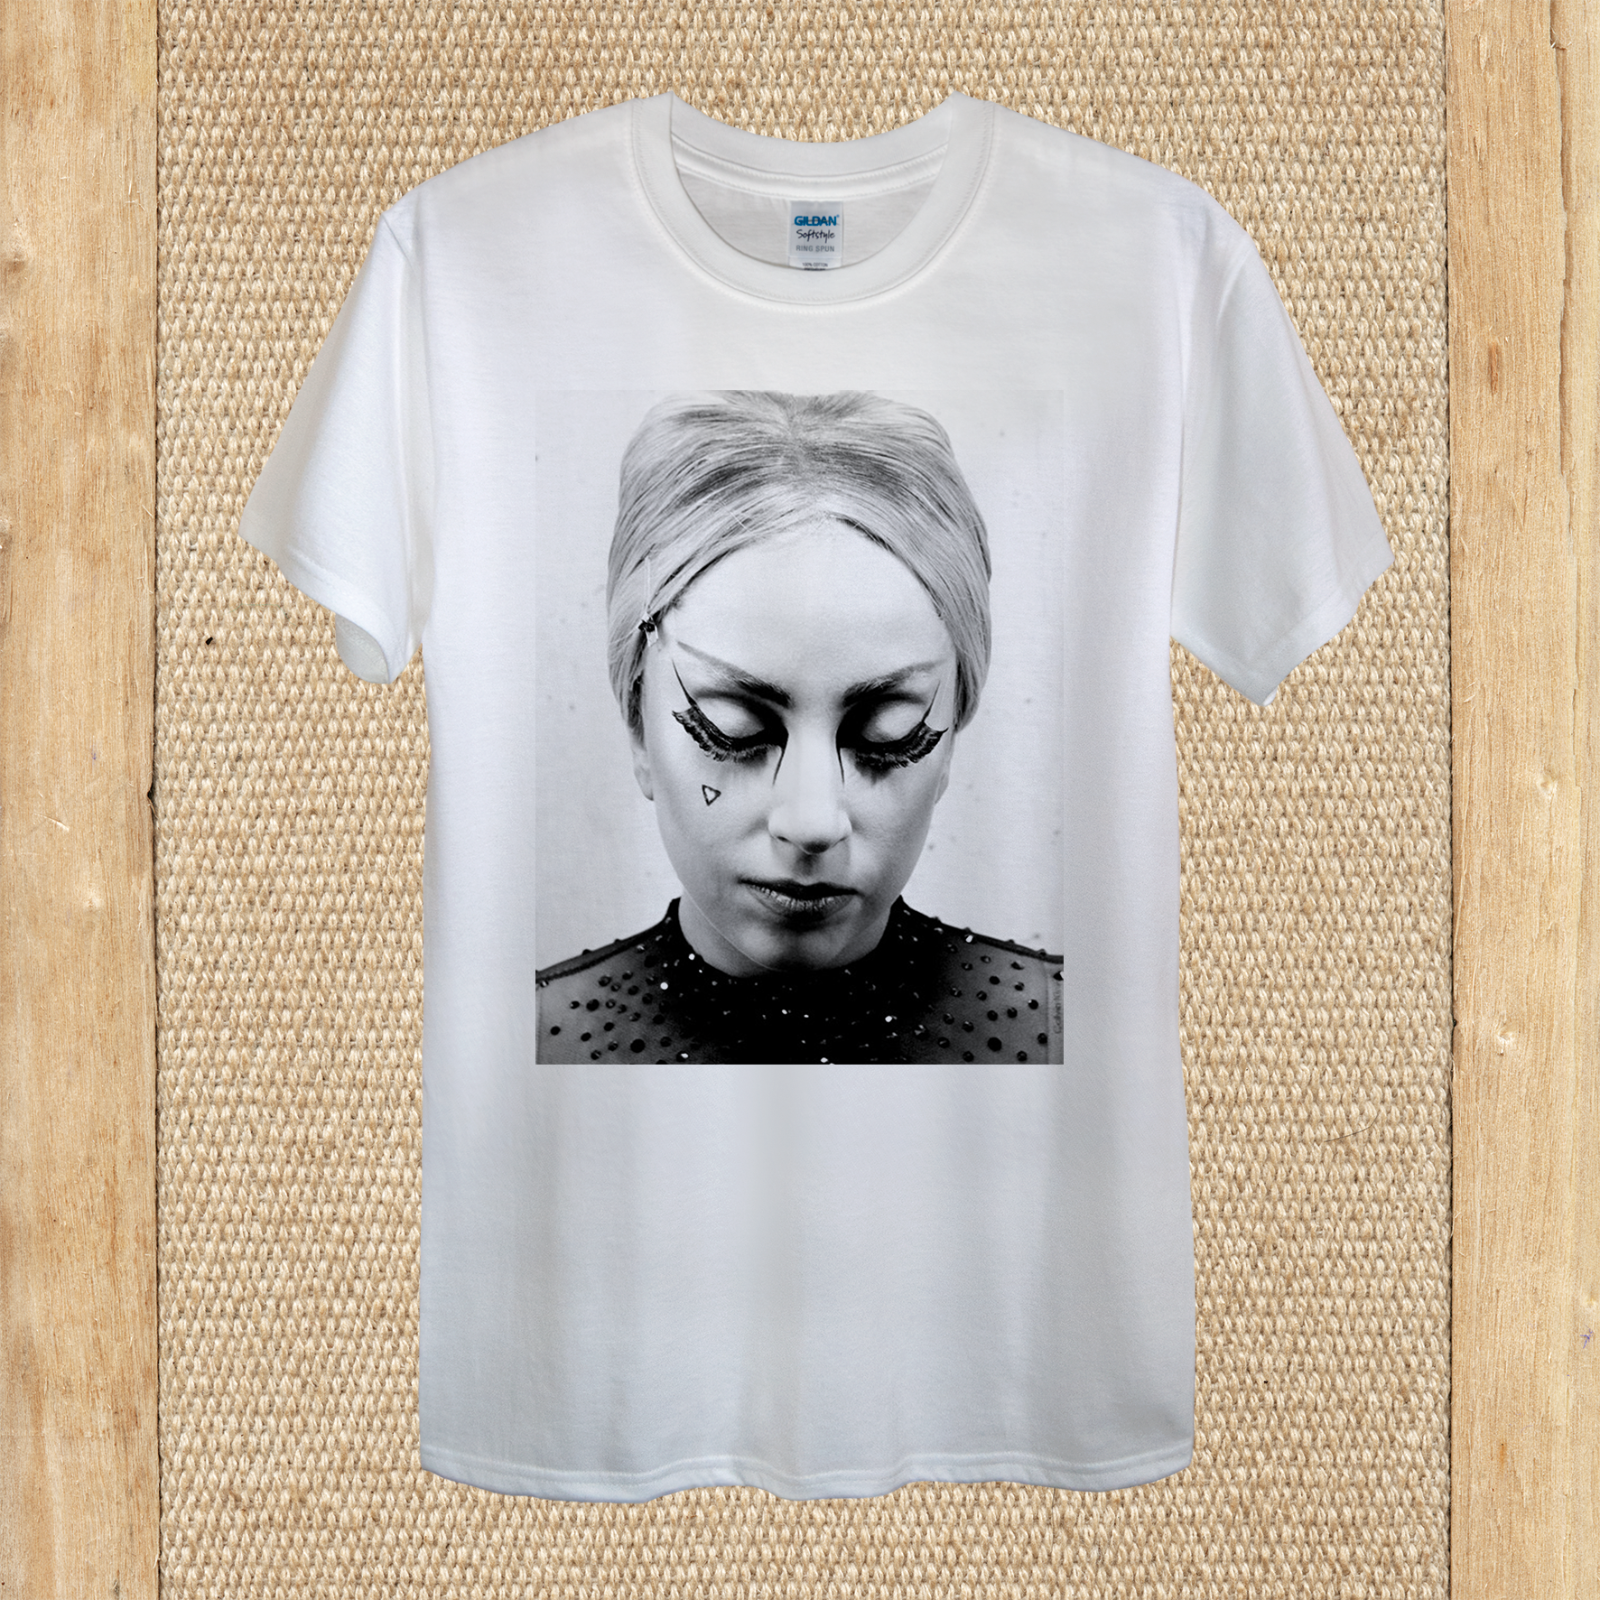 Lady Gaga Pop Music Legend High Quality Print 100% Cotton unisex women